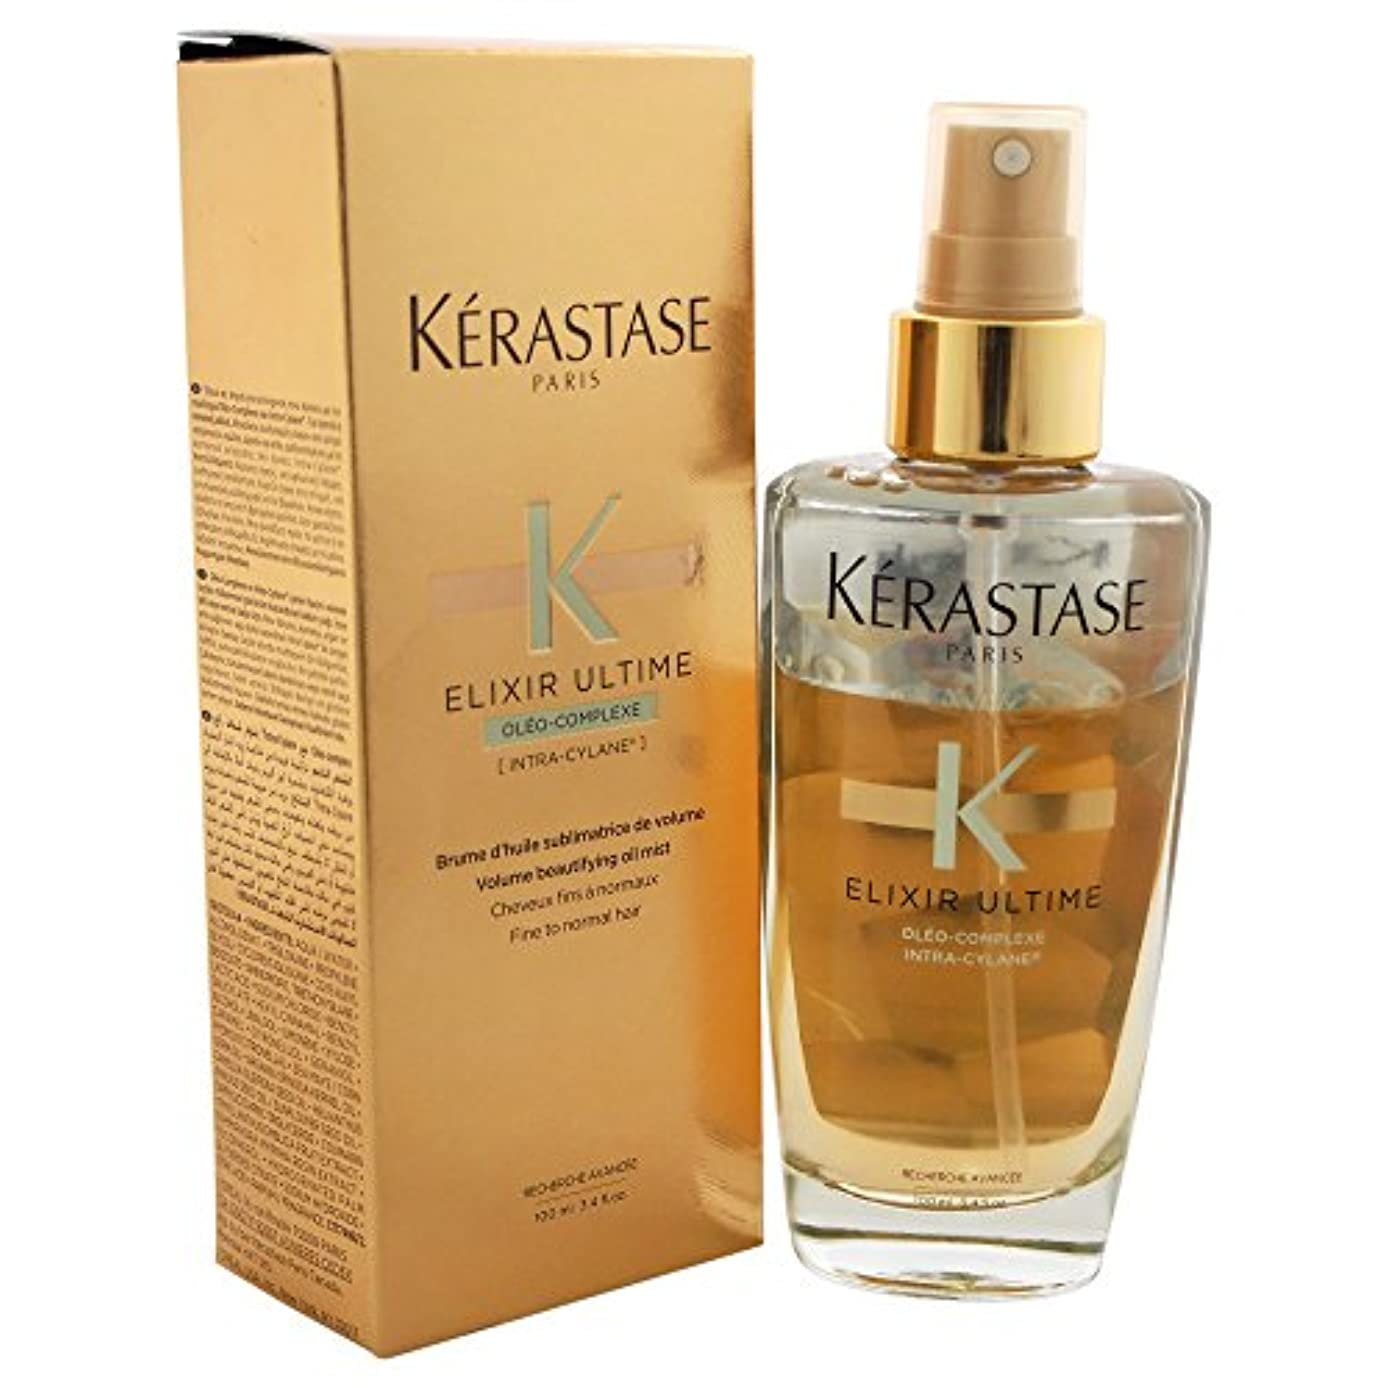 Kerastase Elixir Ultime Oleo-Complexe Volume Beautifying Mist Oil, 3.4 Ounce